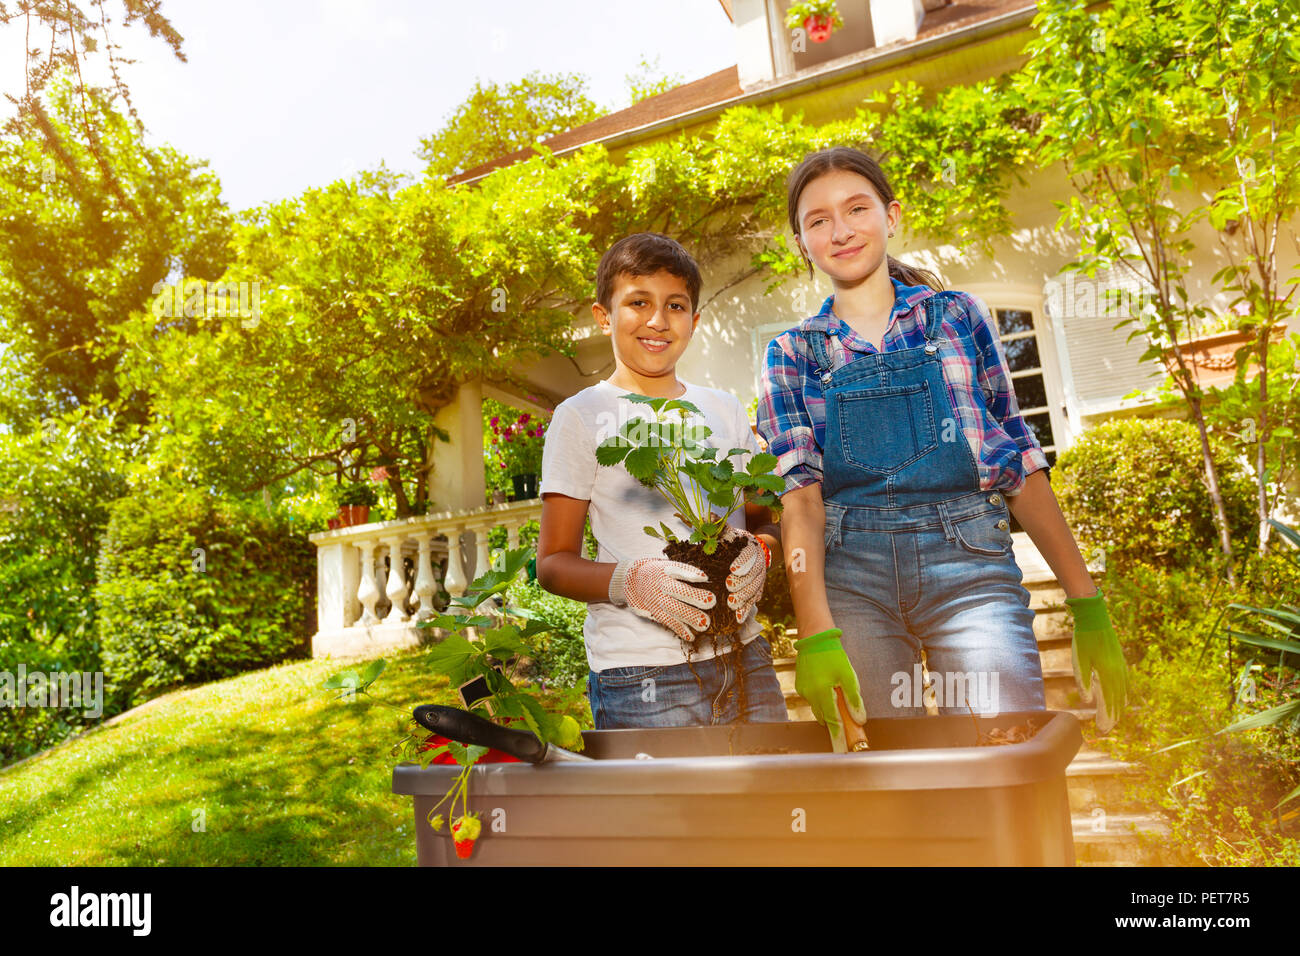 Portrait of happy friends, preteen boy and girl, planting strawberries in container in the backyard at sunny day - Stock Image